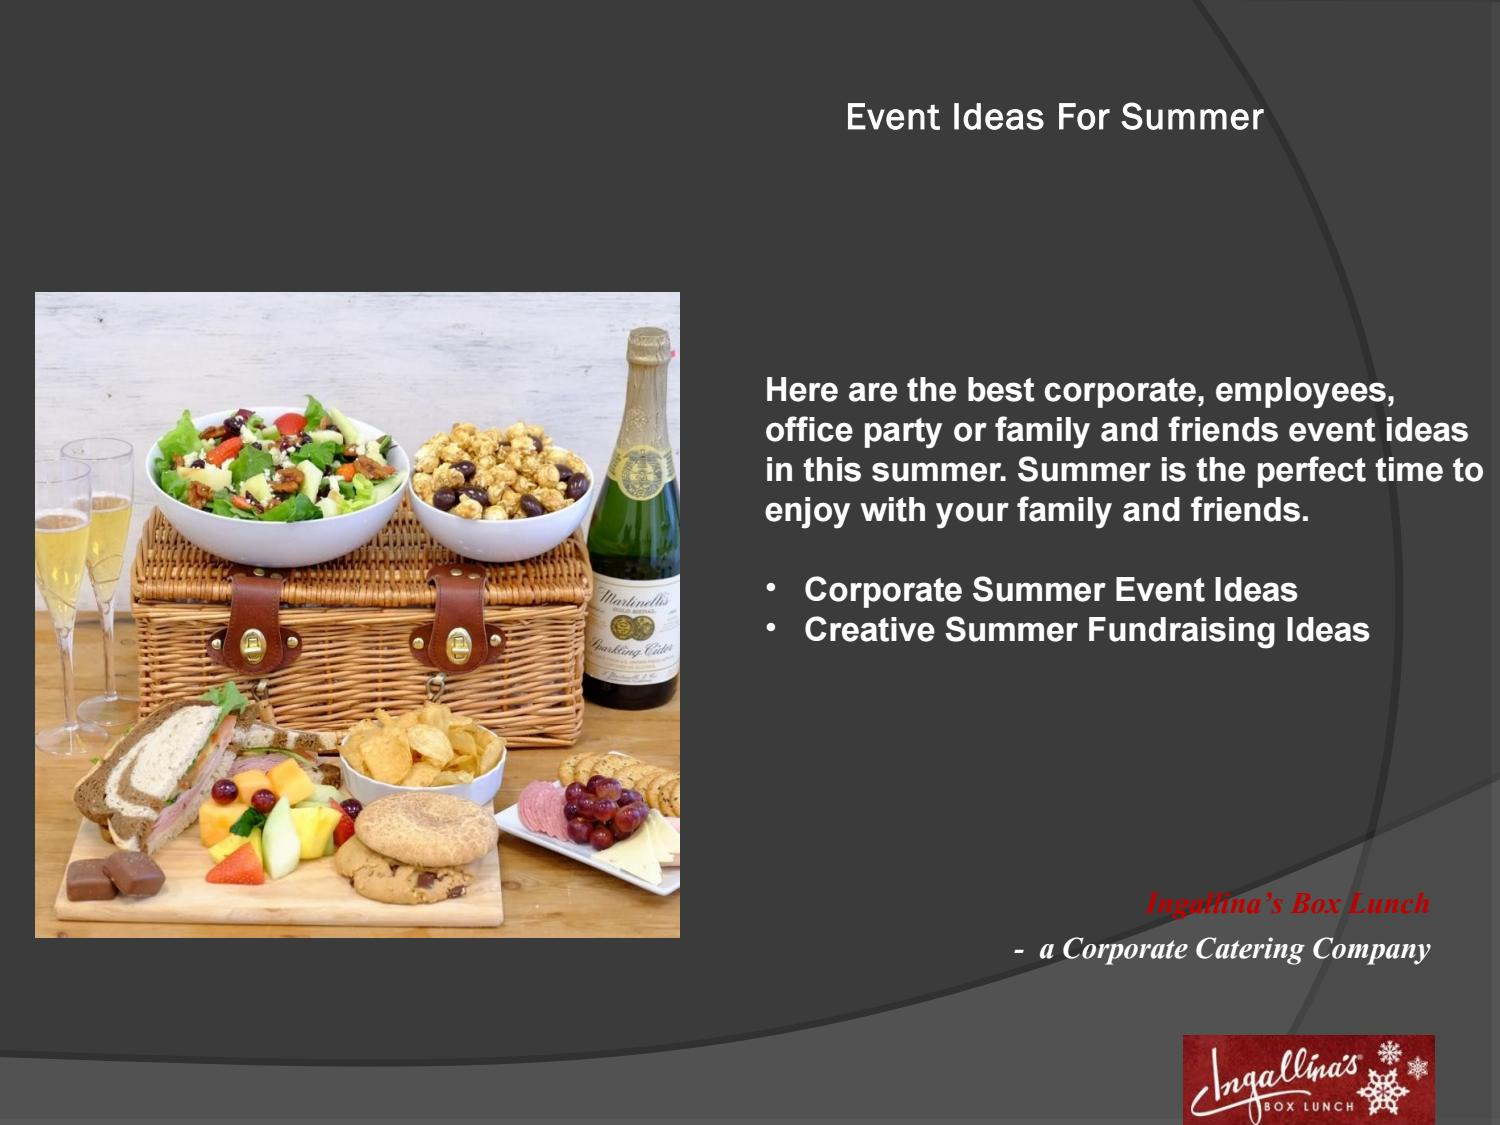 Summer Event Ideas Corporate Family And Friends By Ingallinas